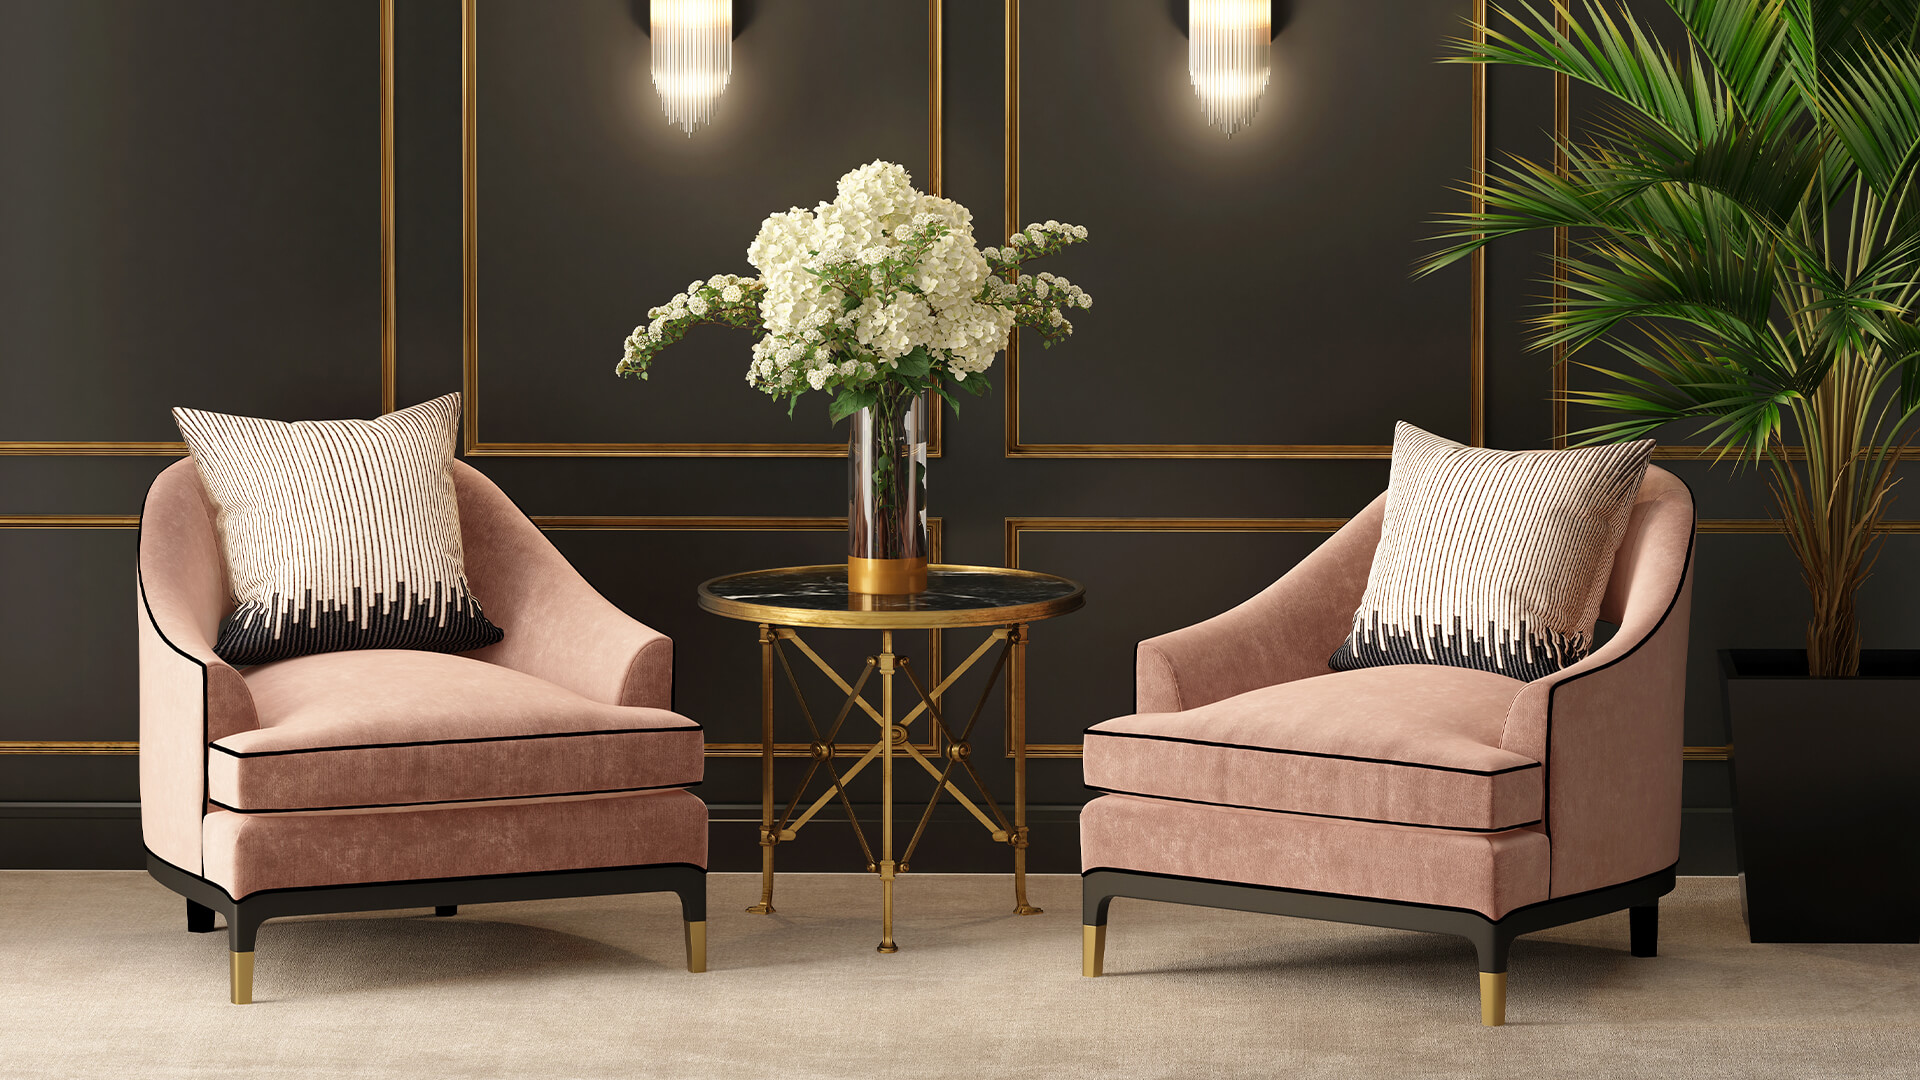 5 smart ways to add luxury to your home